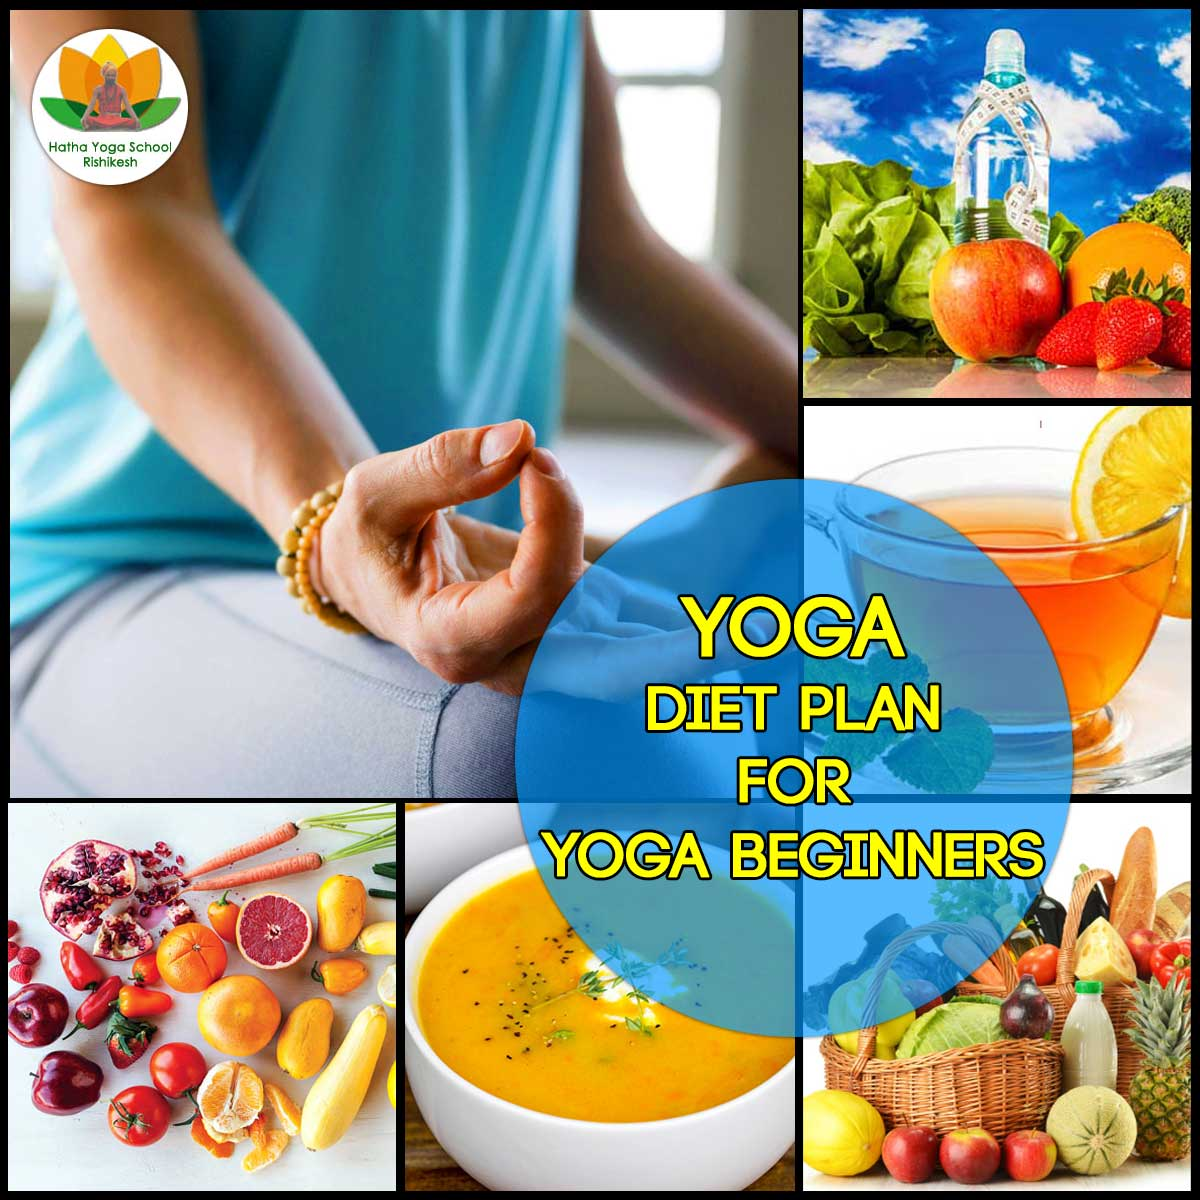 yoga diet plan for yoga beginners